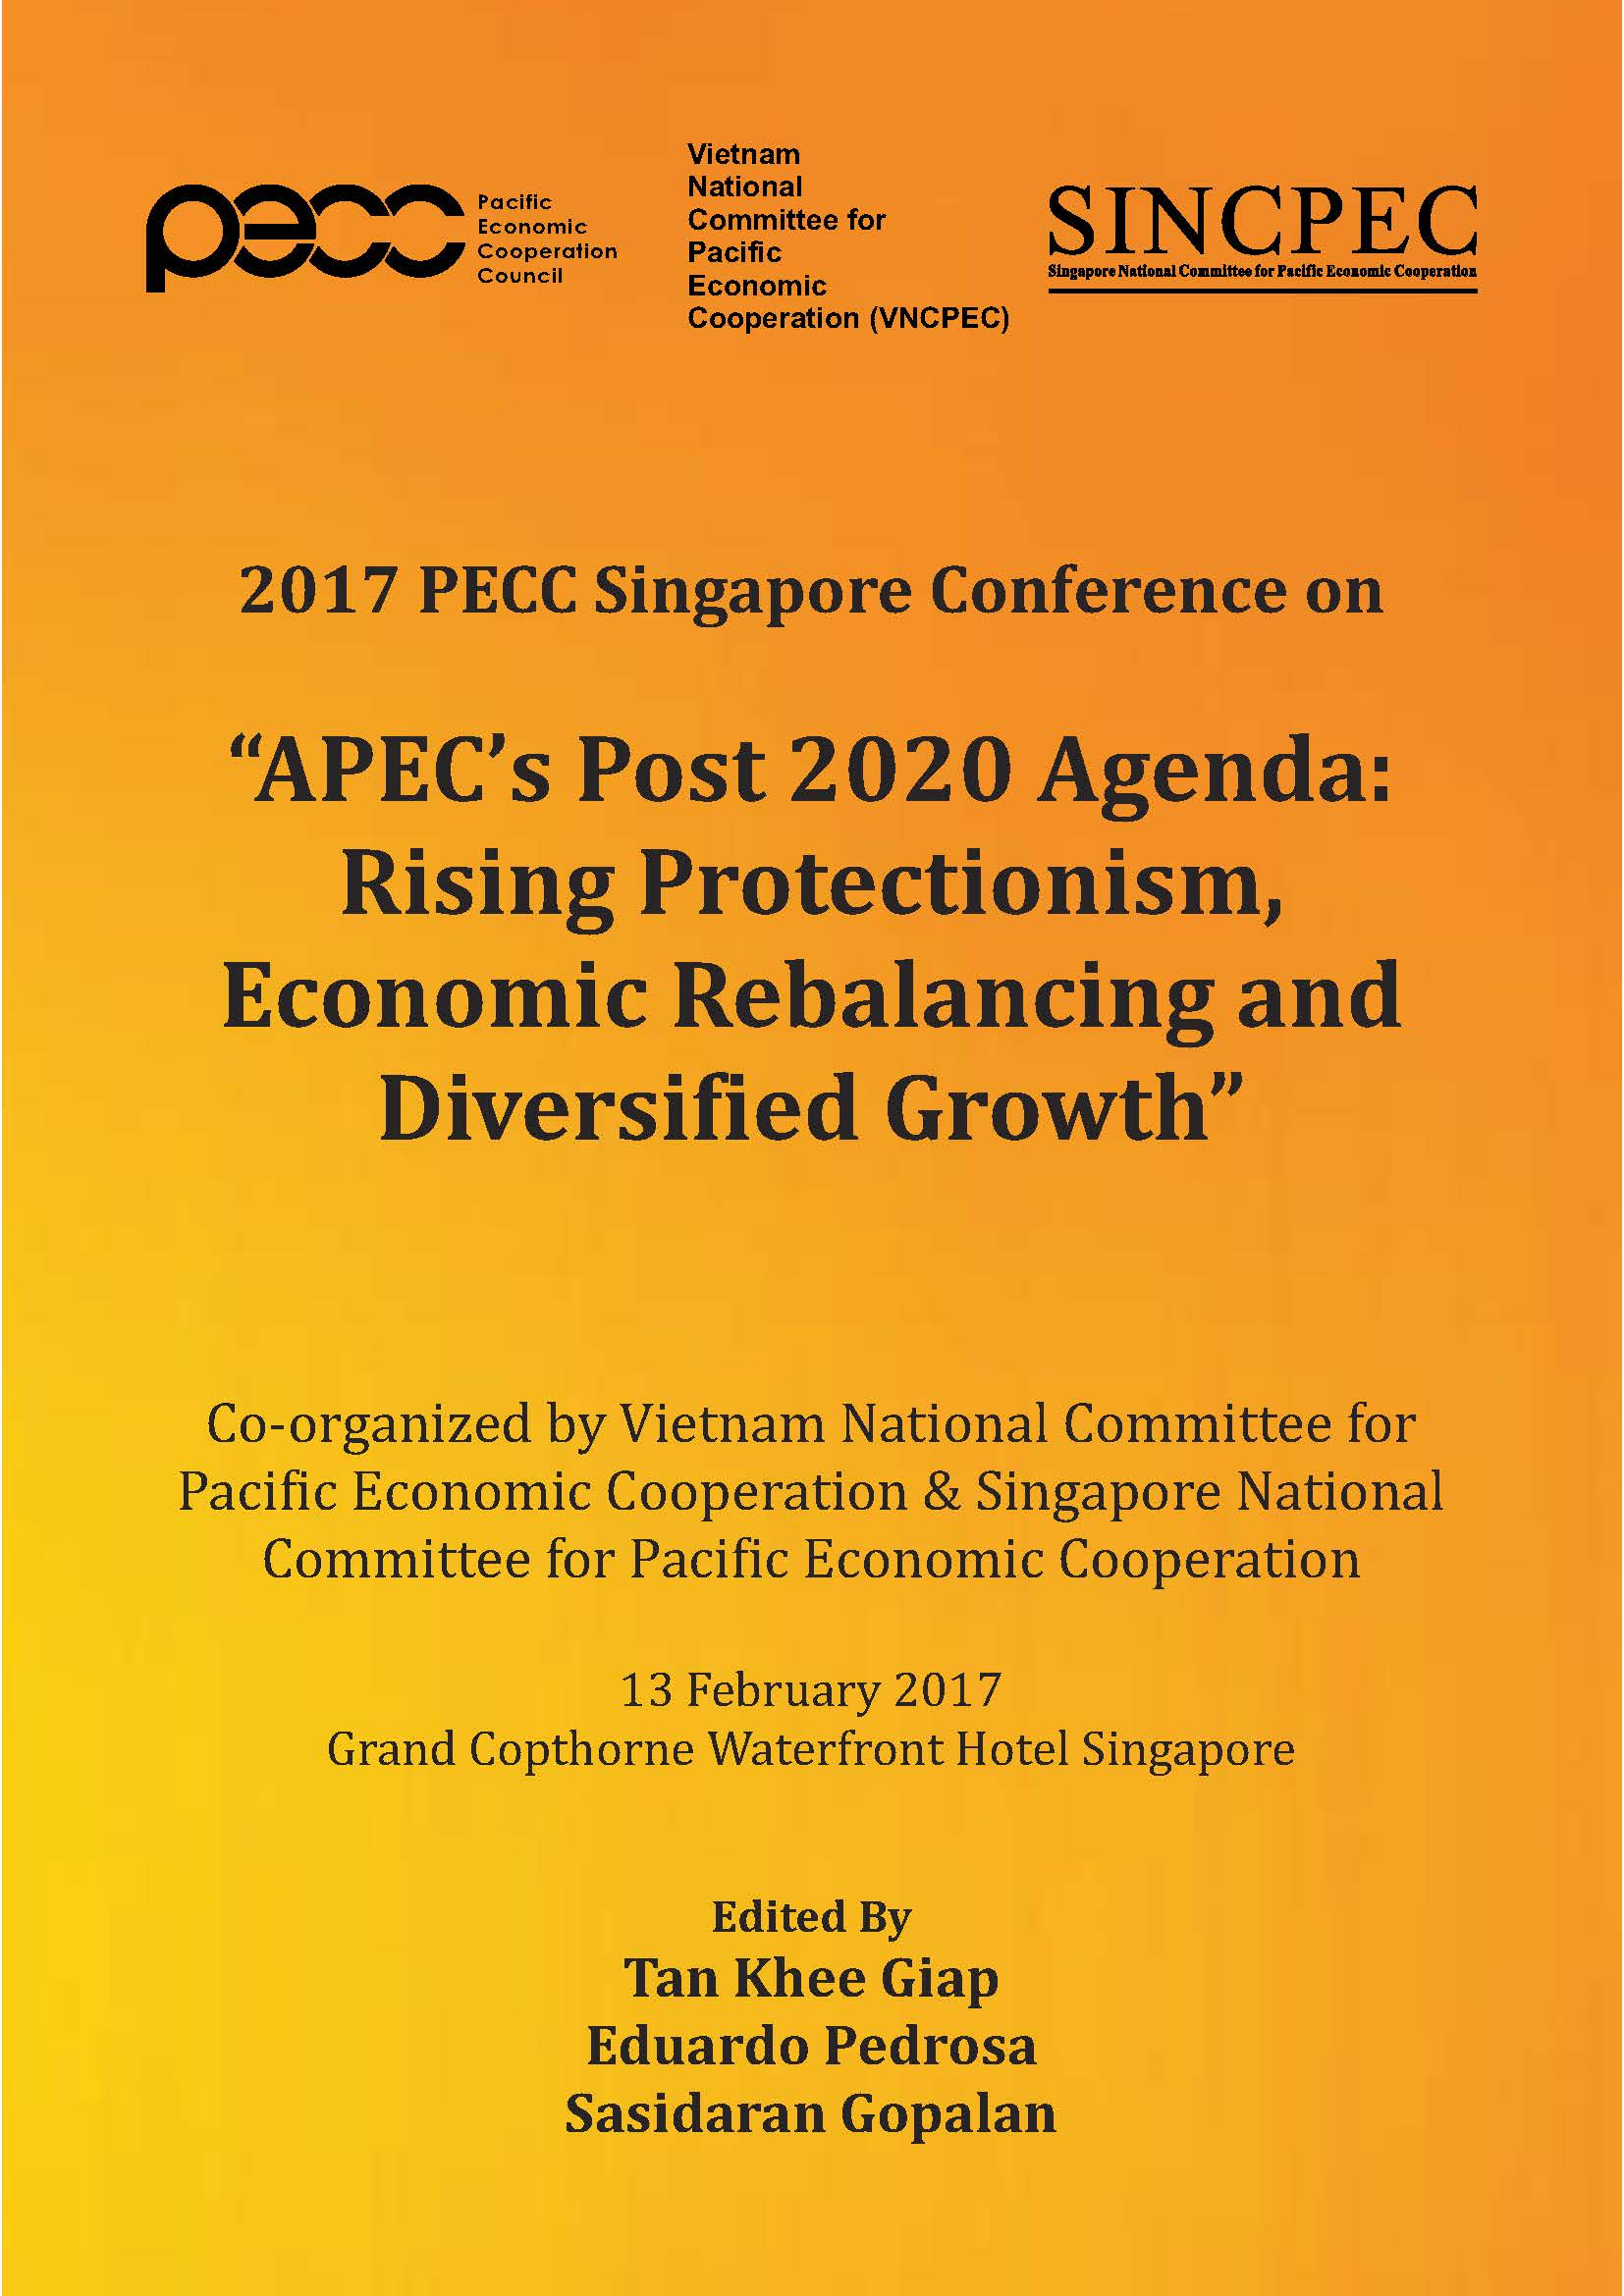 Publications-2017-PECCSGConf-APECs-Post-2020-Agenda